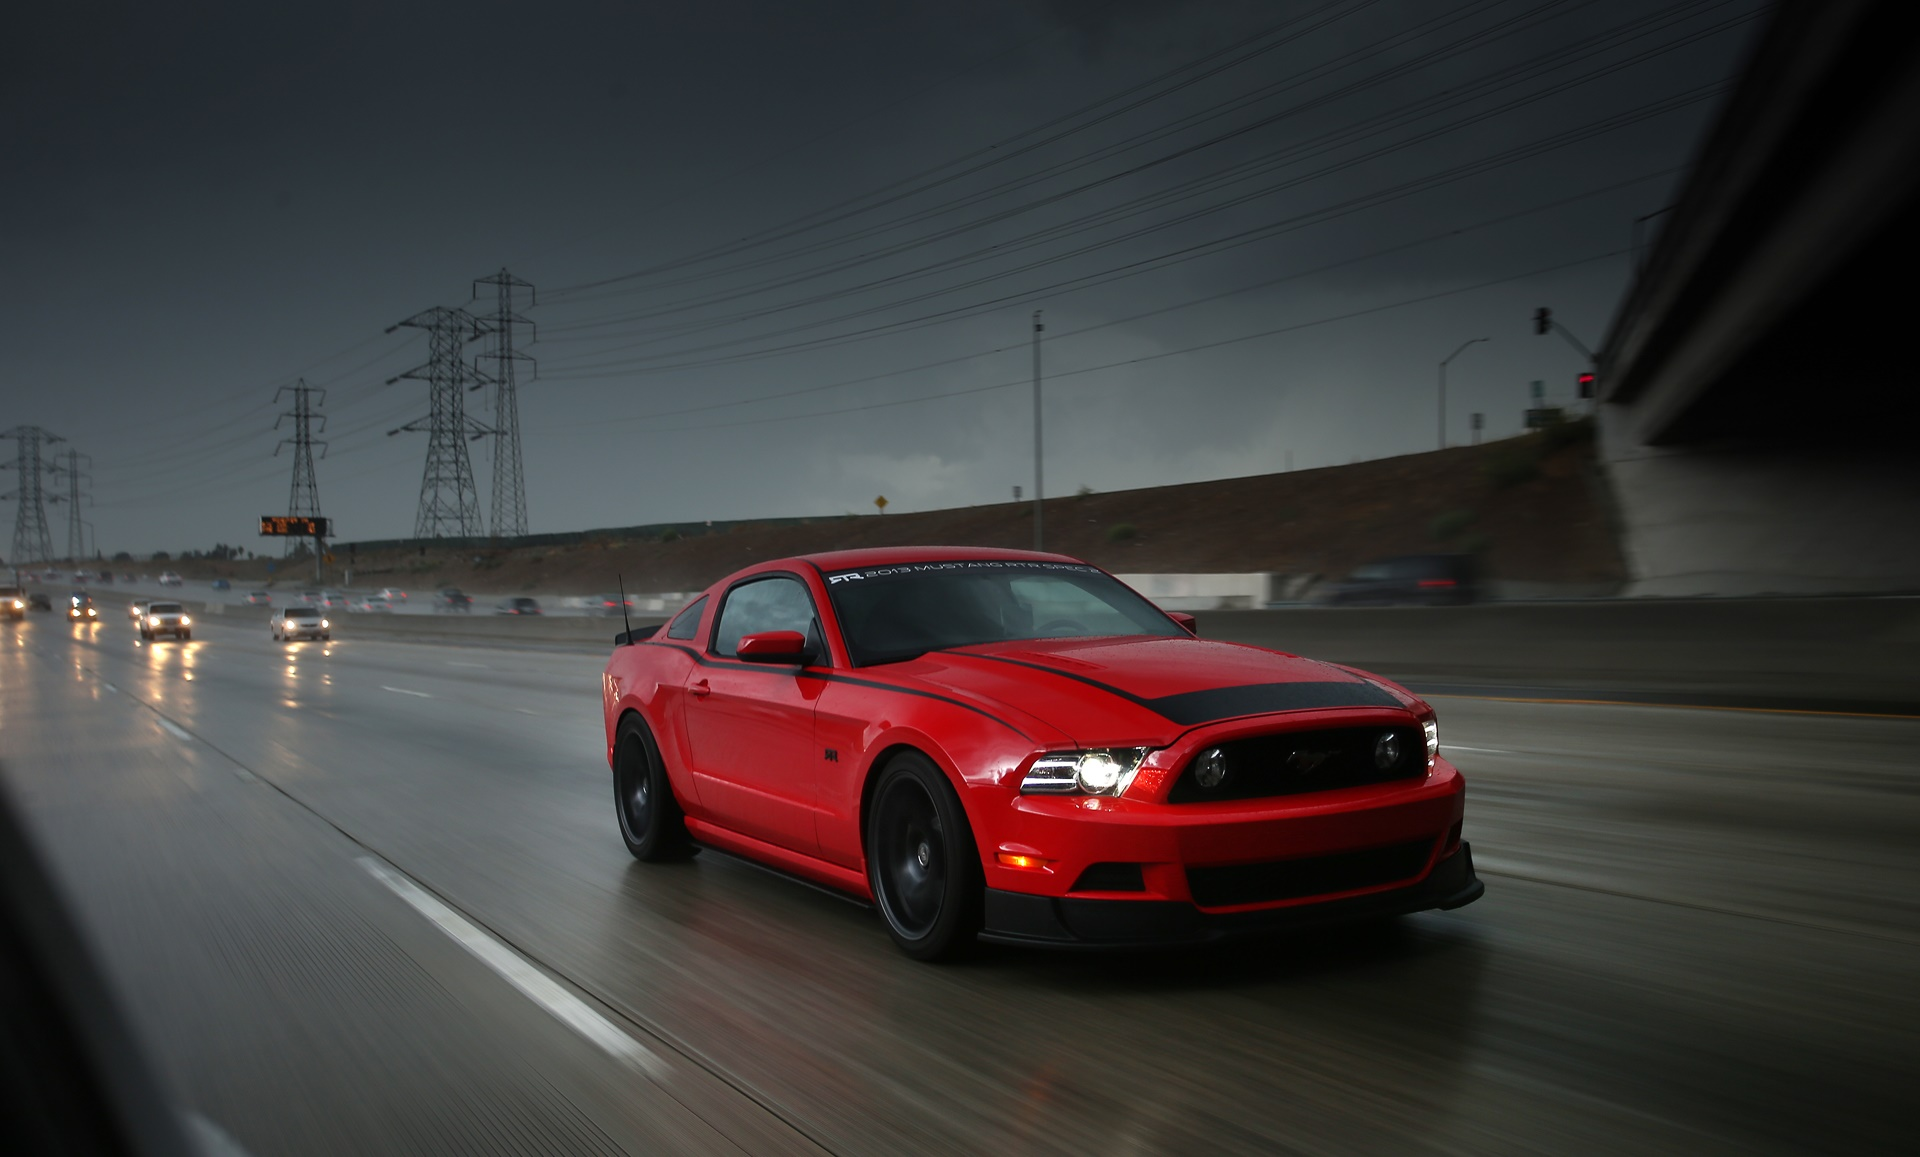 mustang hd wallpaper high quality pixelstalk ford mustang wallpaper